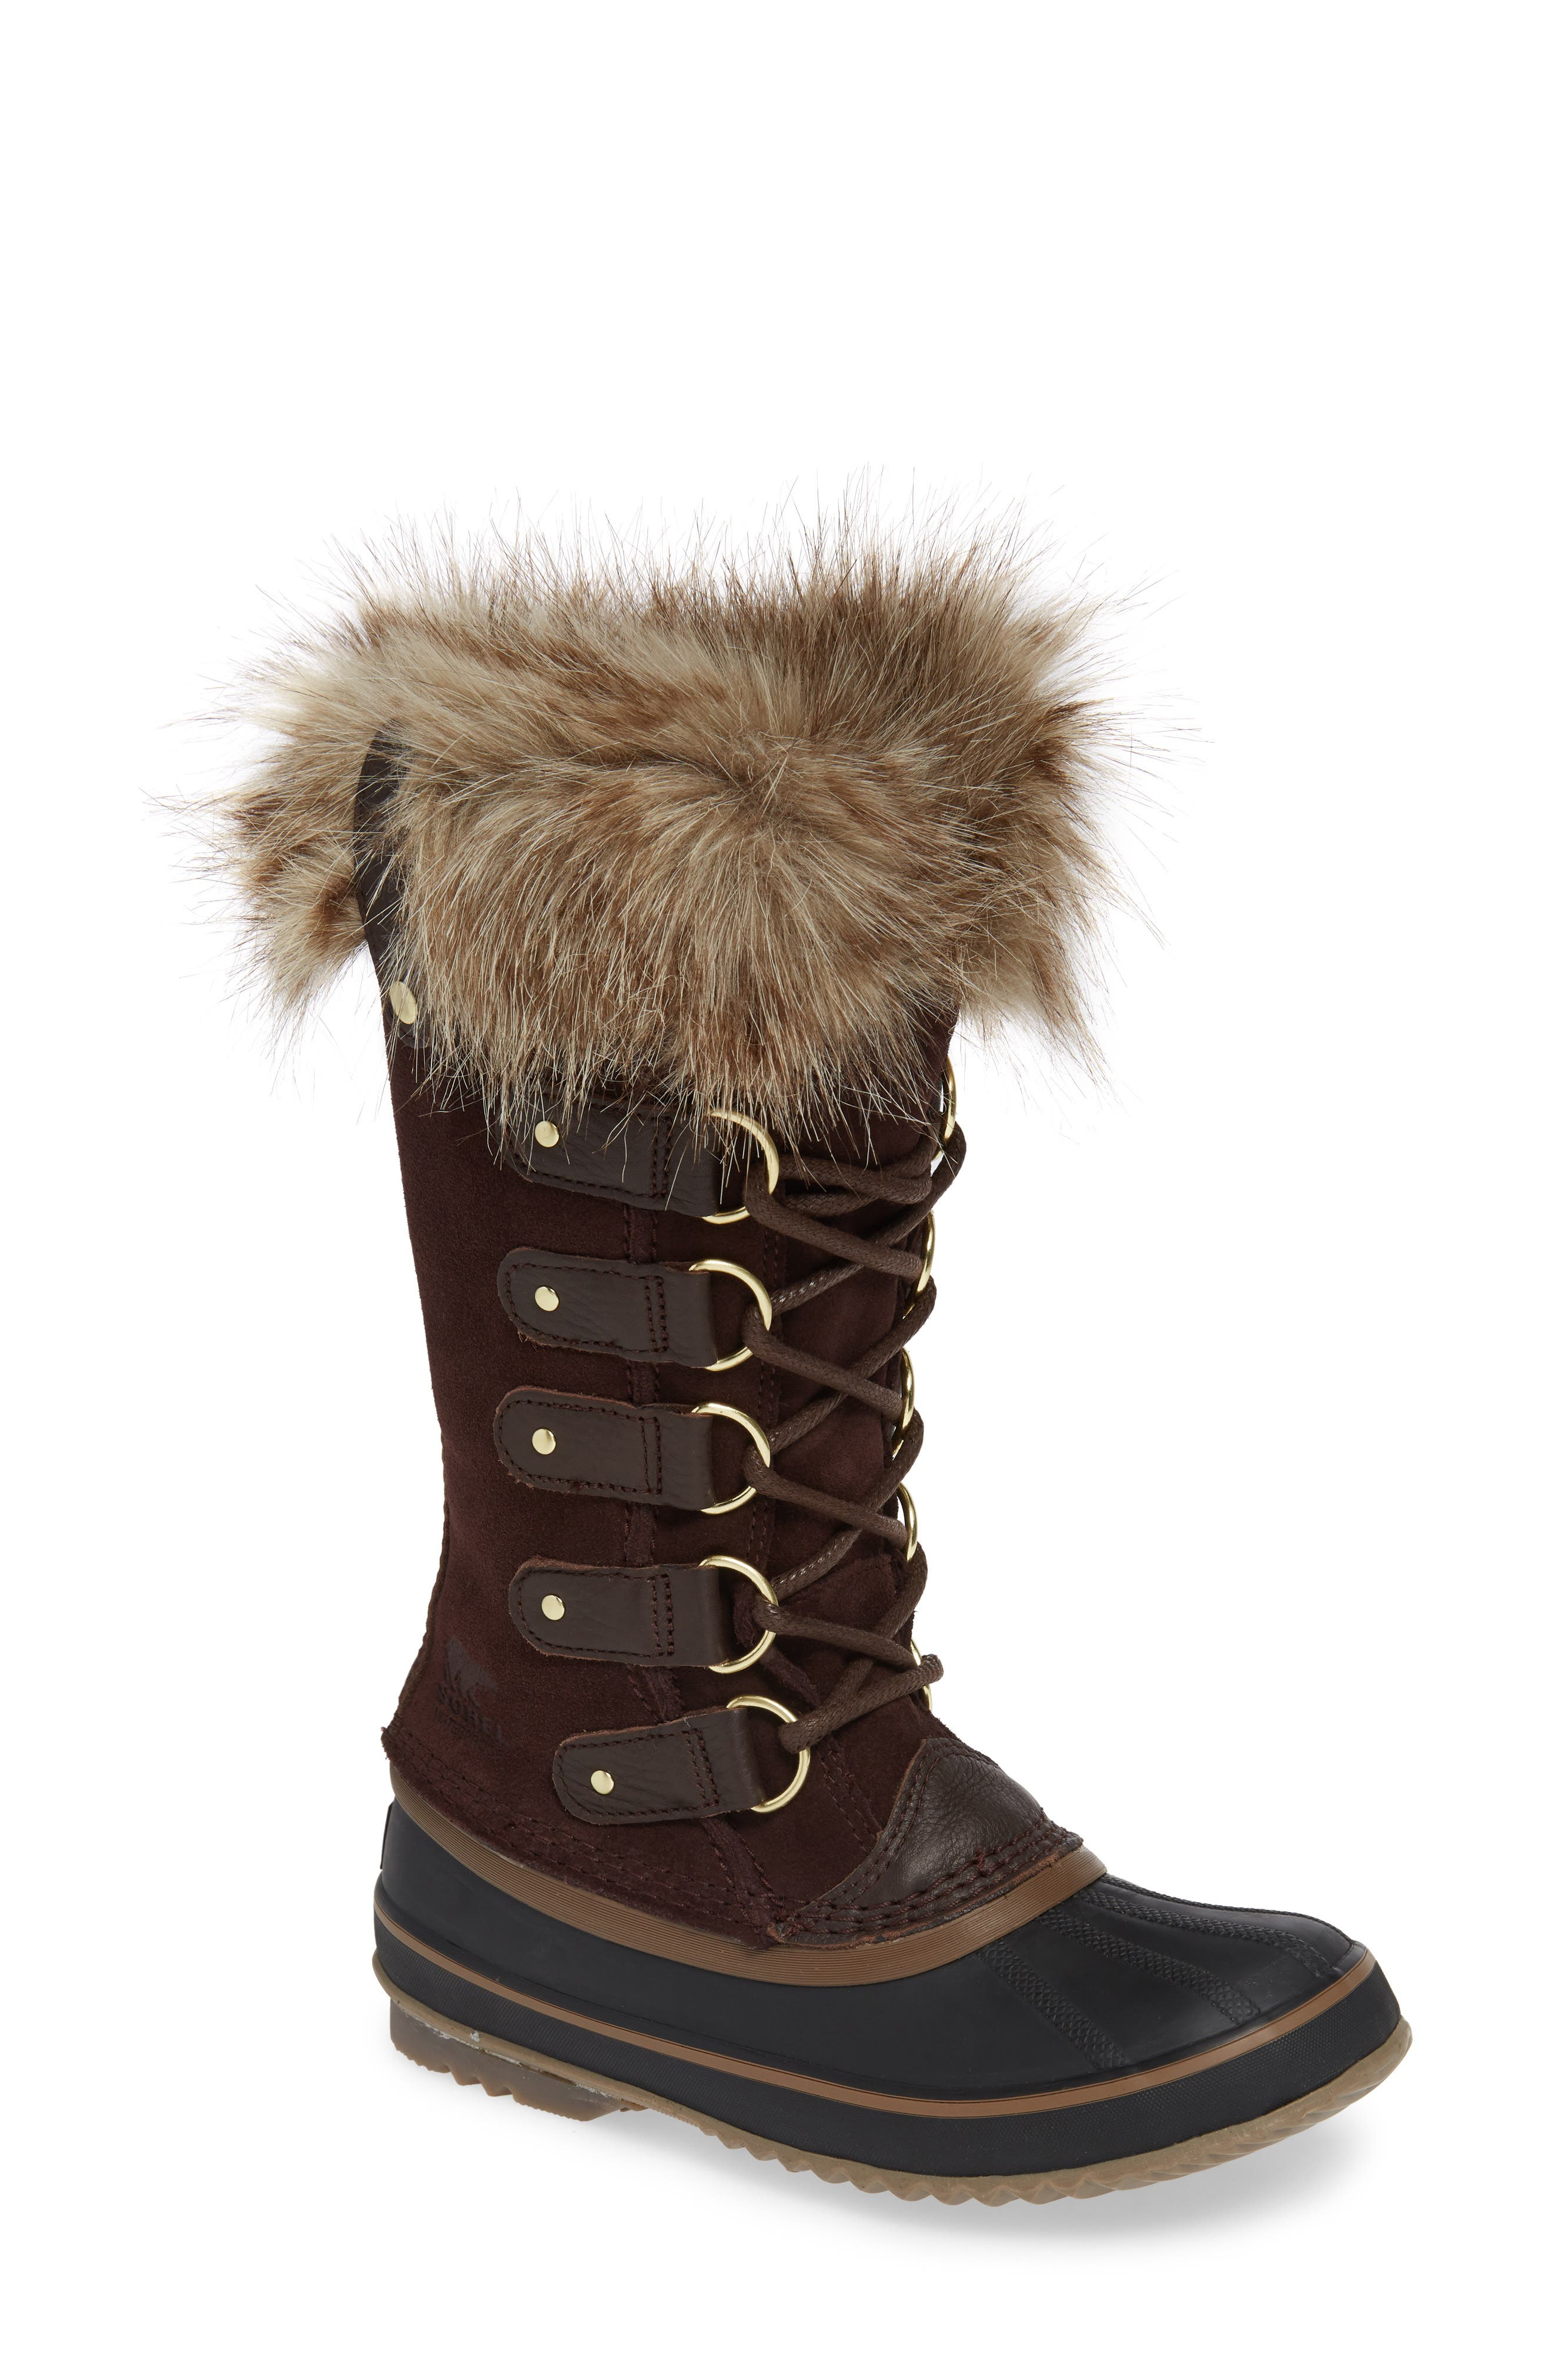 'Joan of Arctic' Waterproof Snow Boot,                             Main thumbnail 1, color,                             CATTAIL